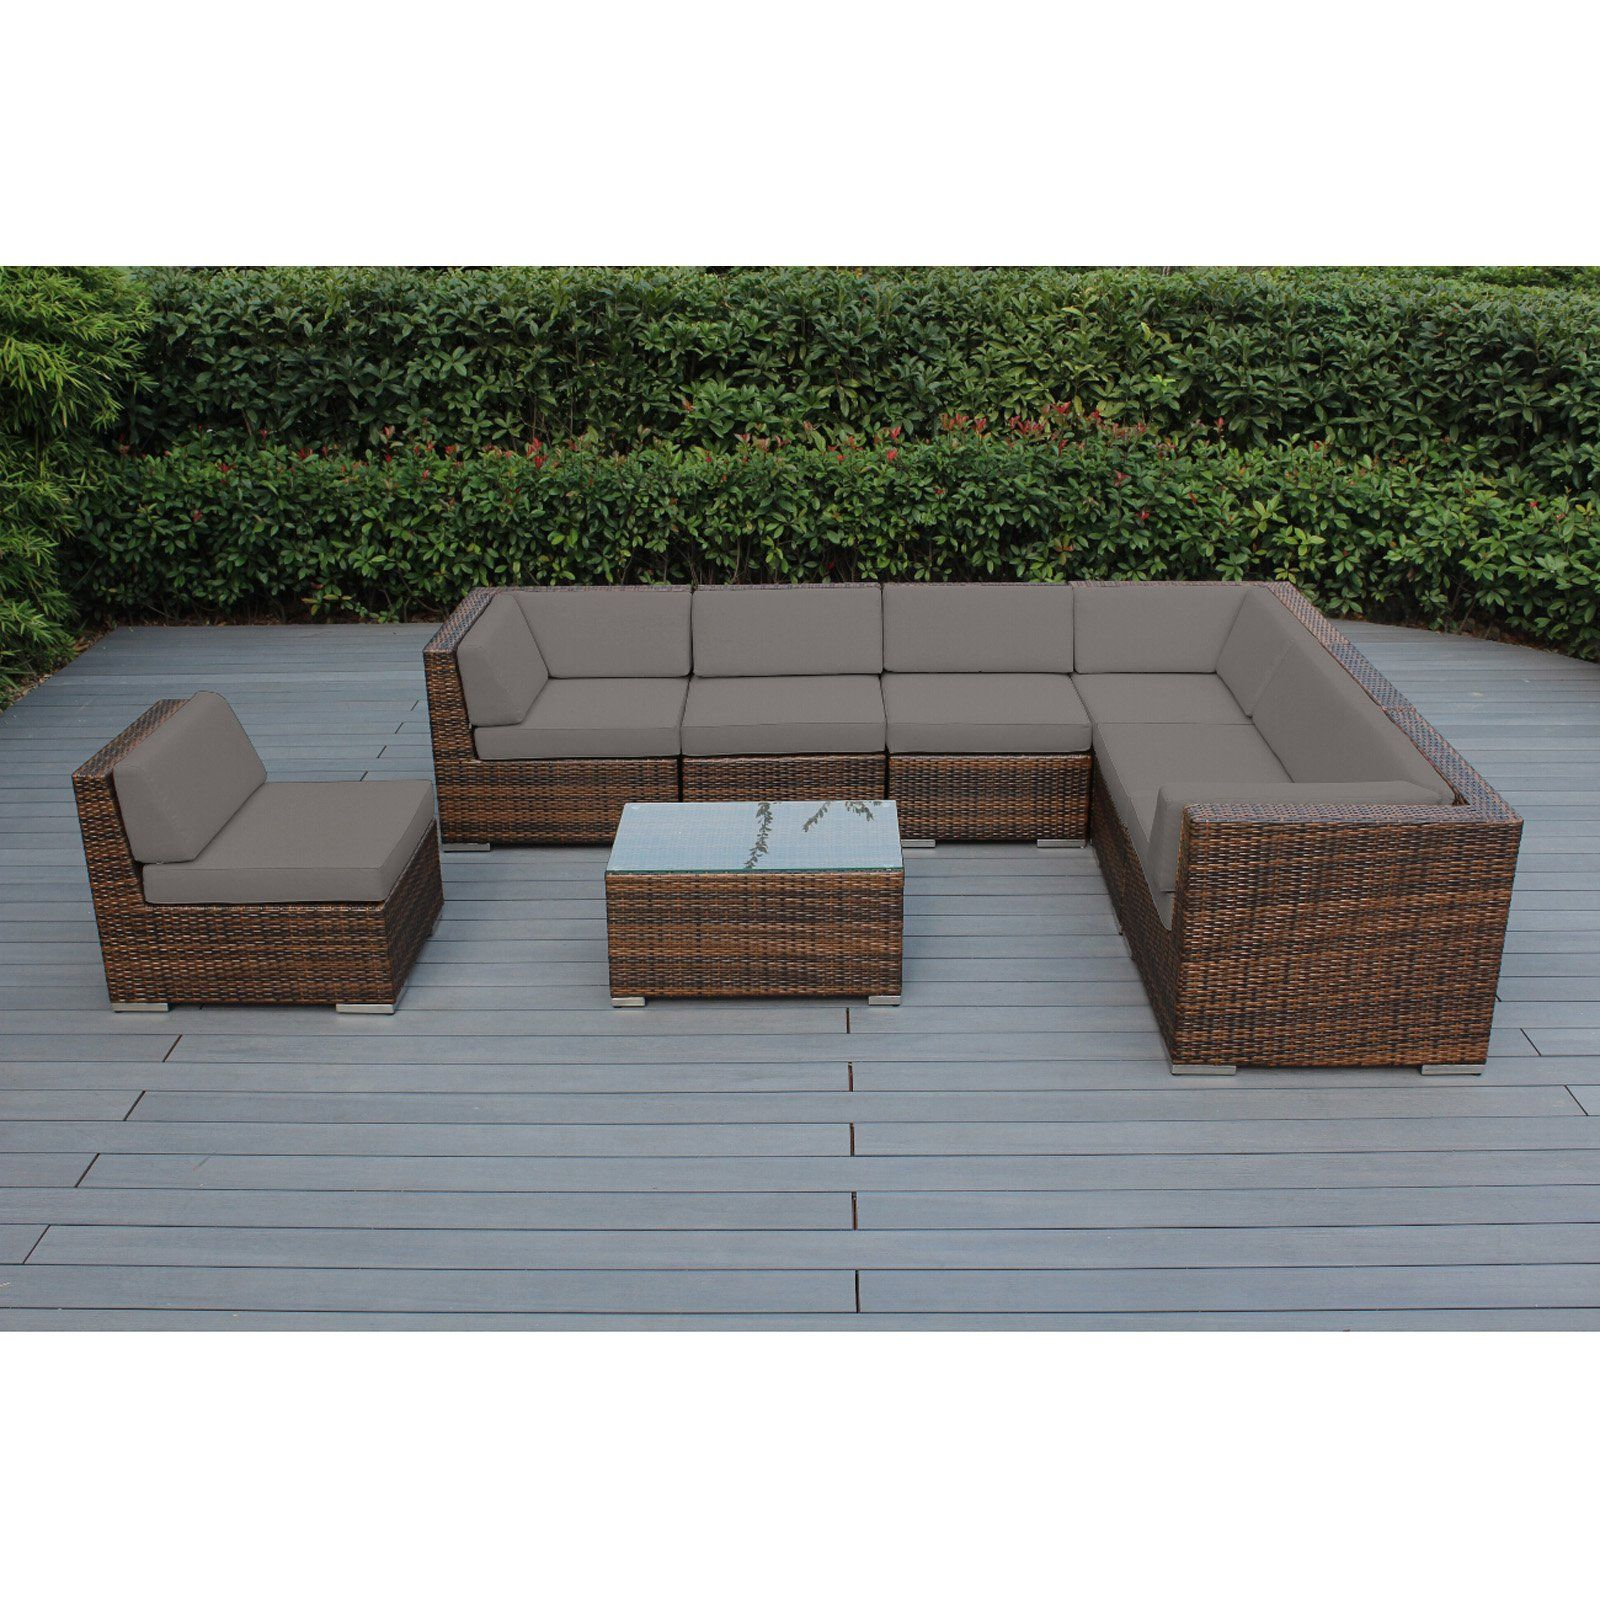 Outdoor Ohana All Weather Wicker 8 Piece Sectional Patio